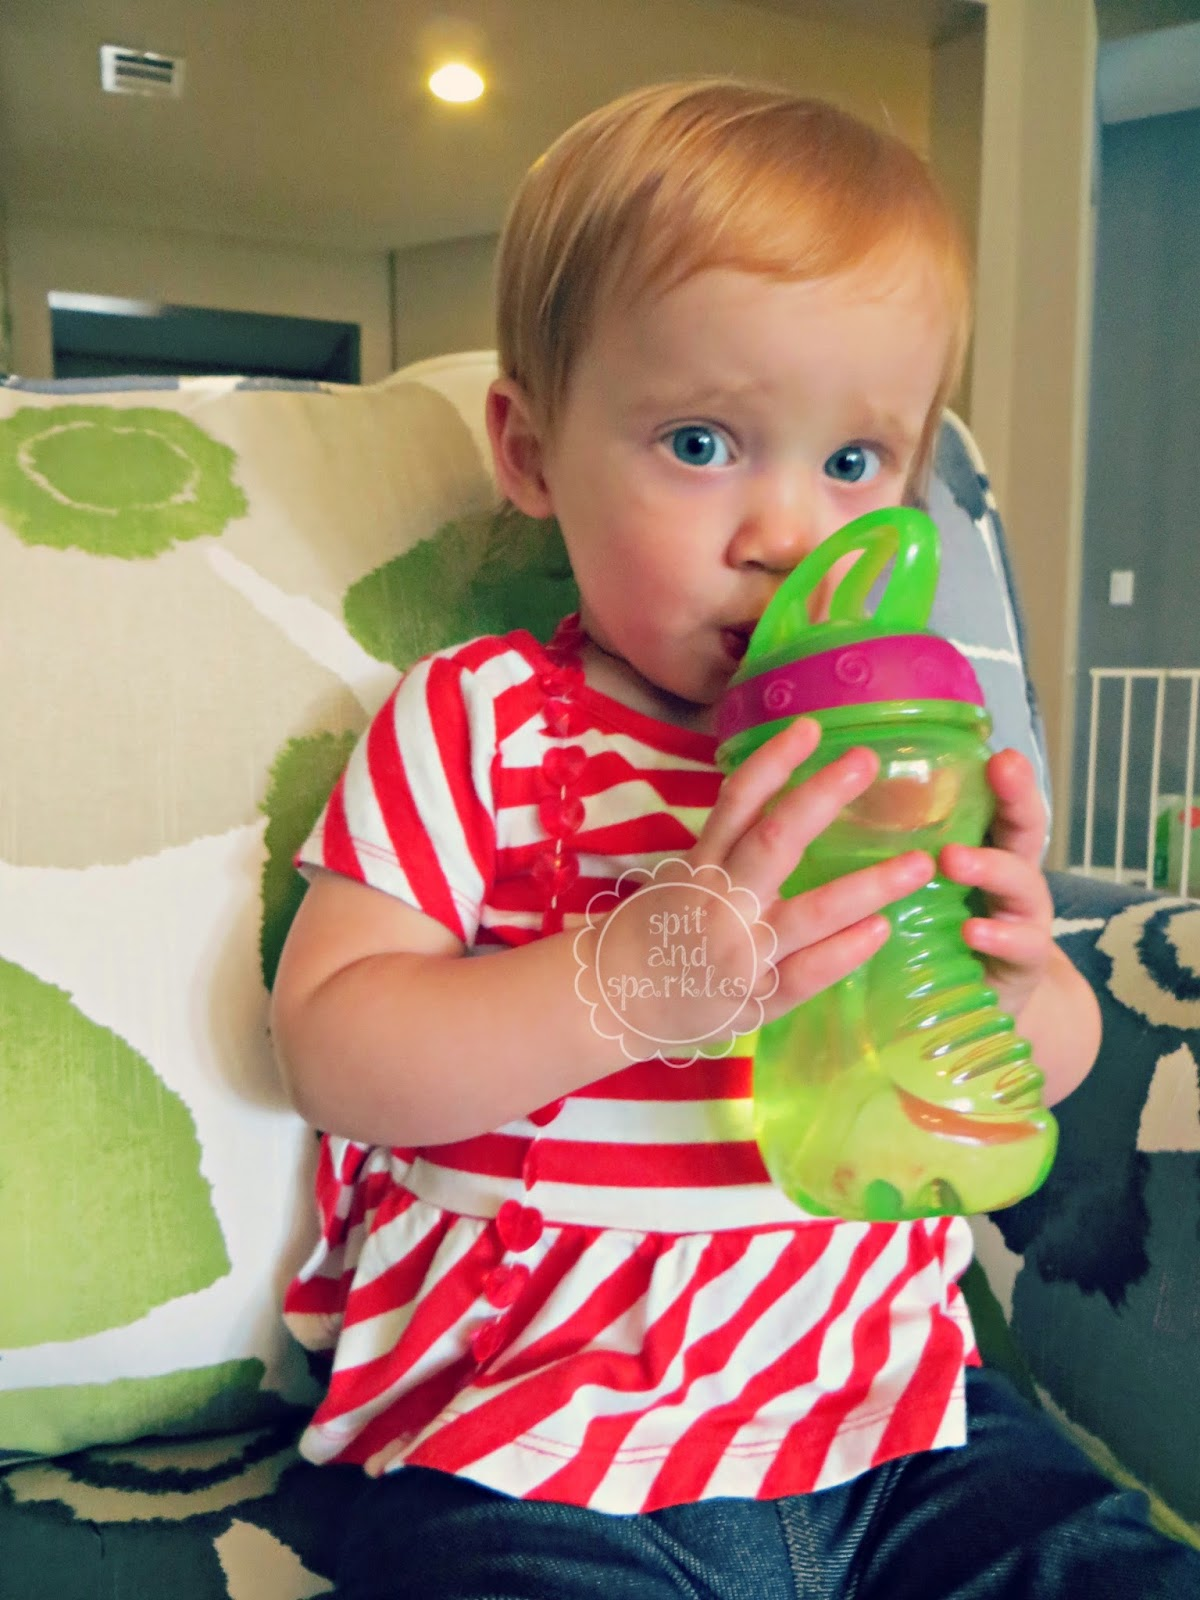 Product Review: Nuby Flip-it Easy Grip cups. #review #Nuby #toddlers